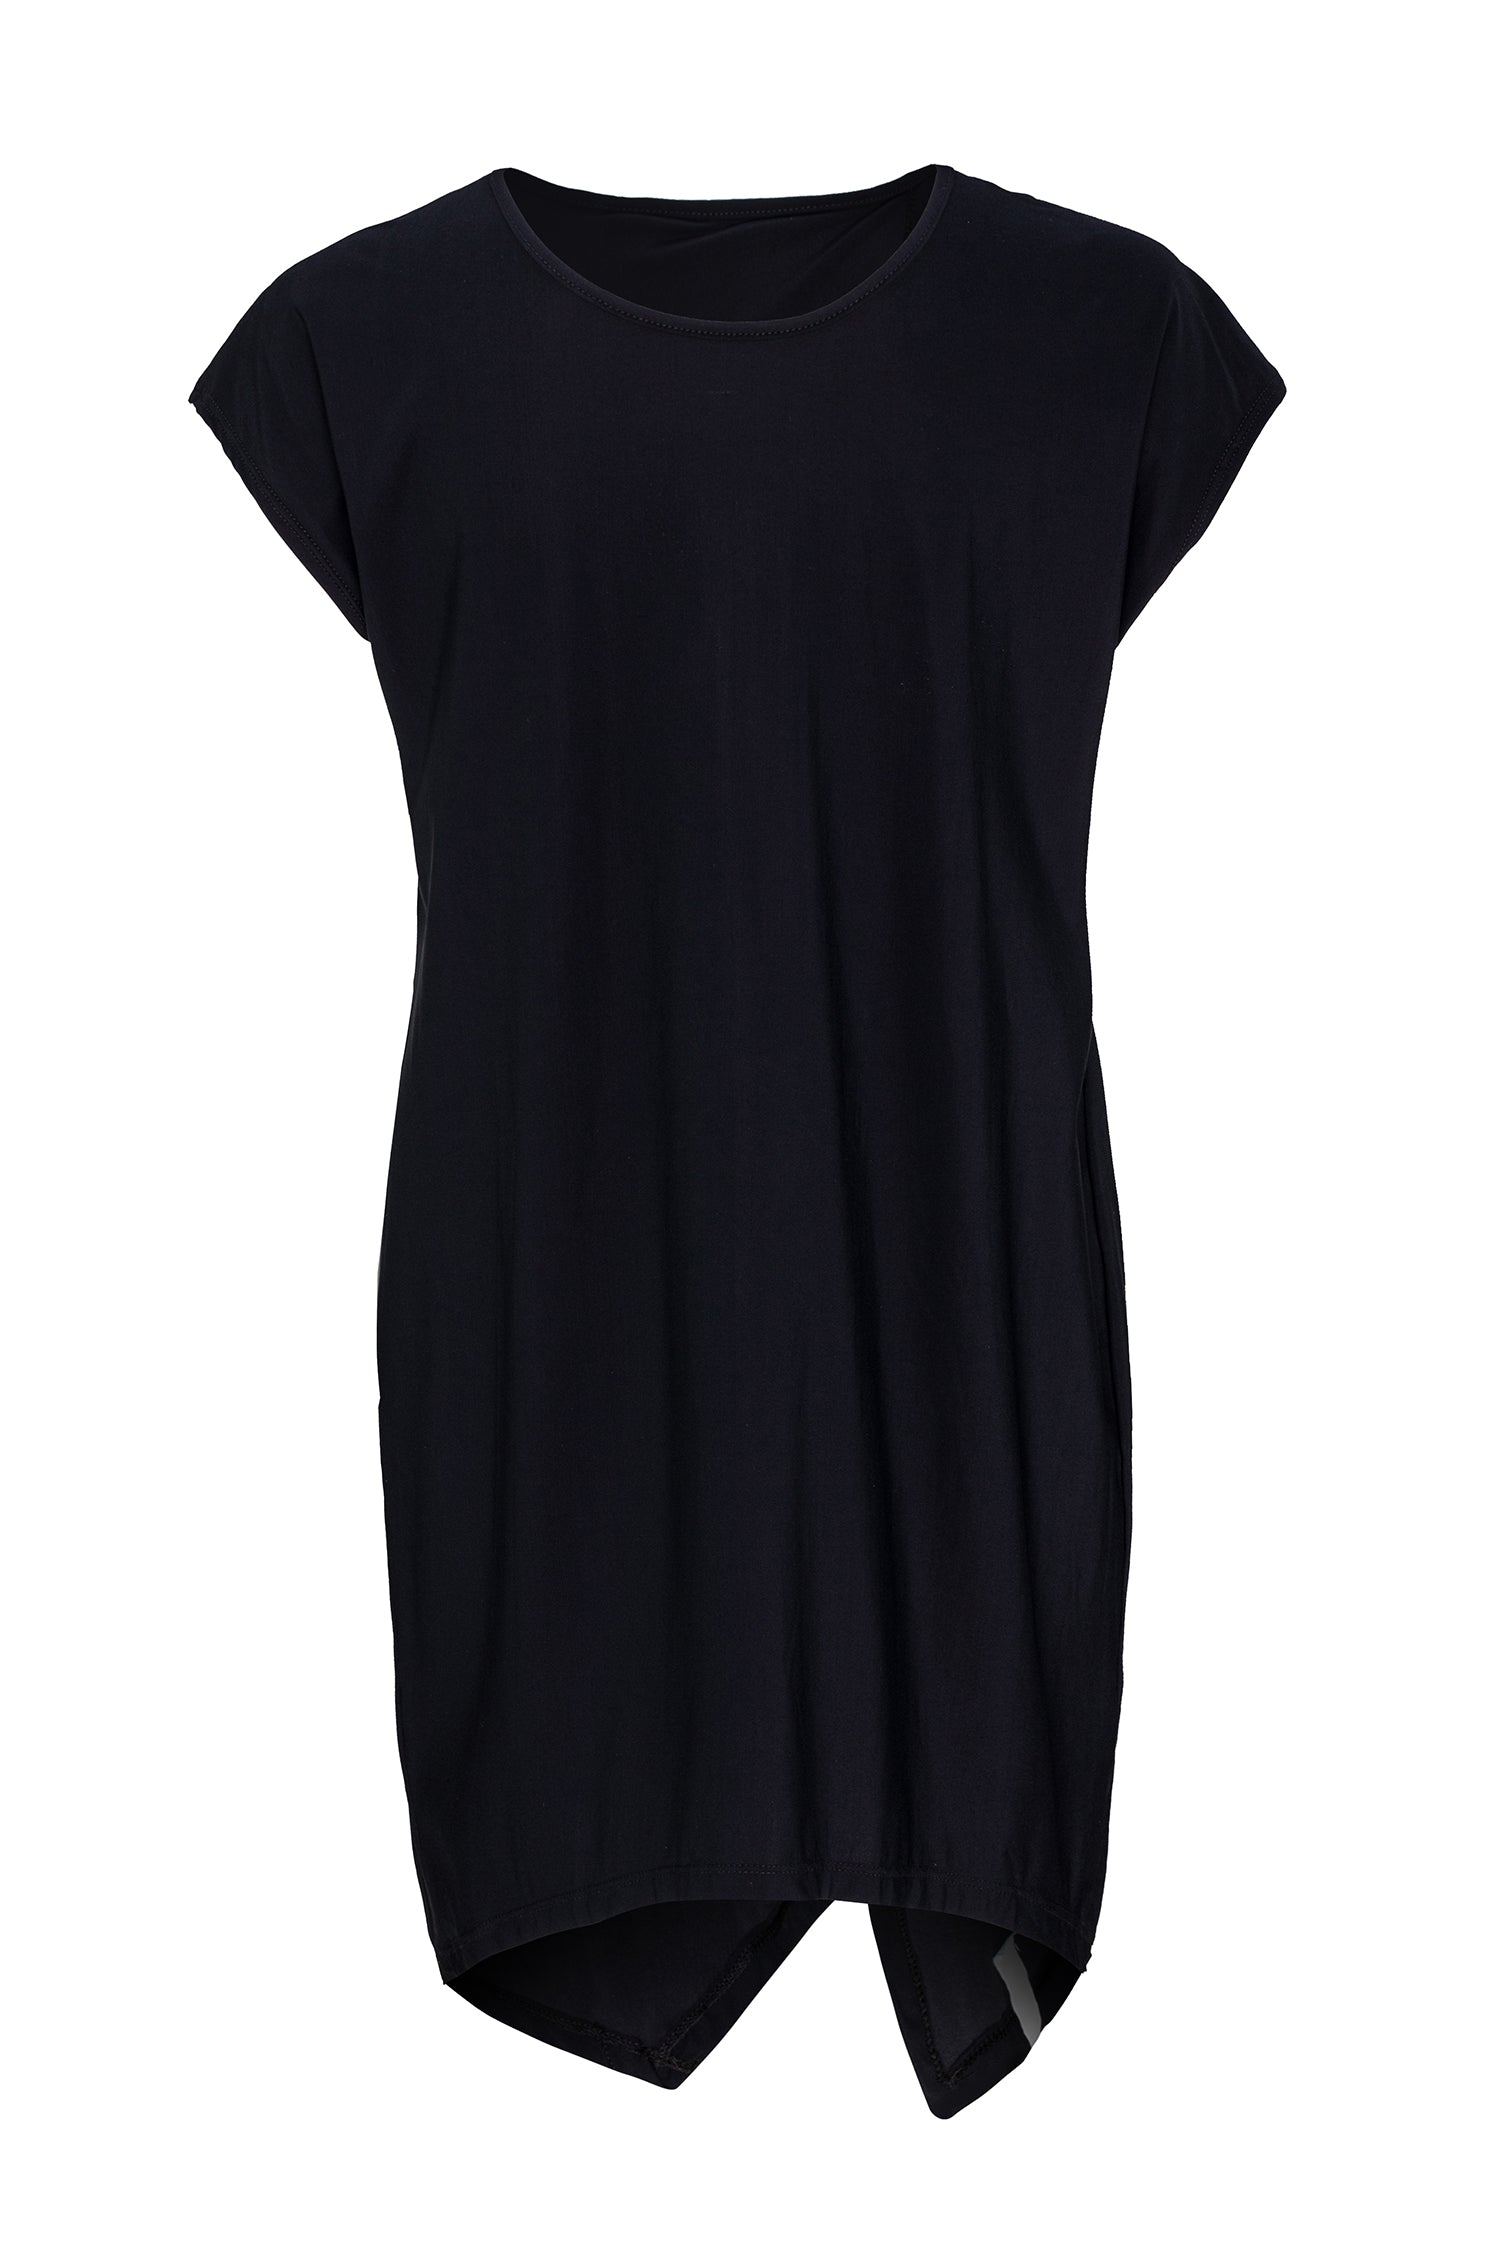 Spin Around tunic - Black UPF50+